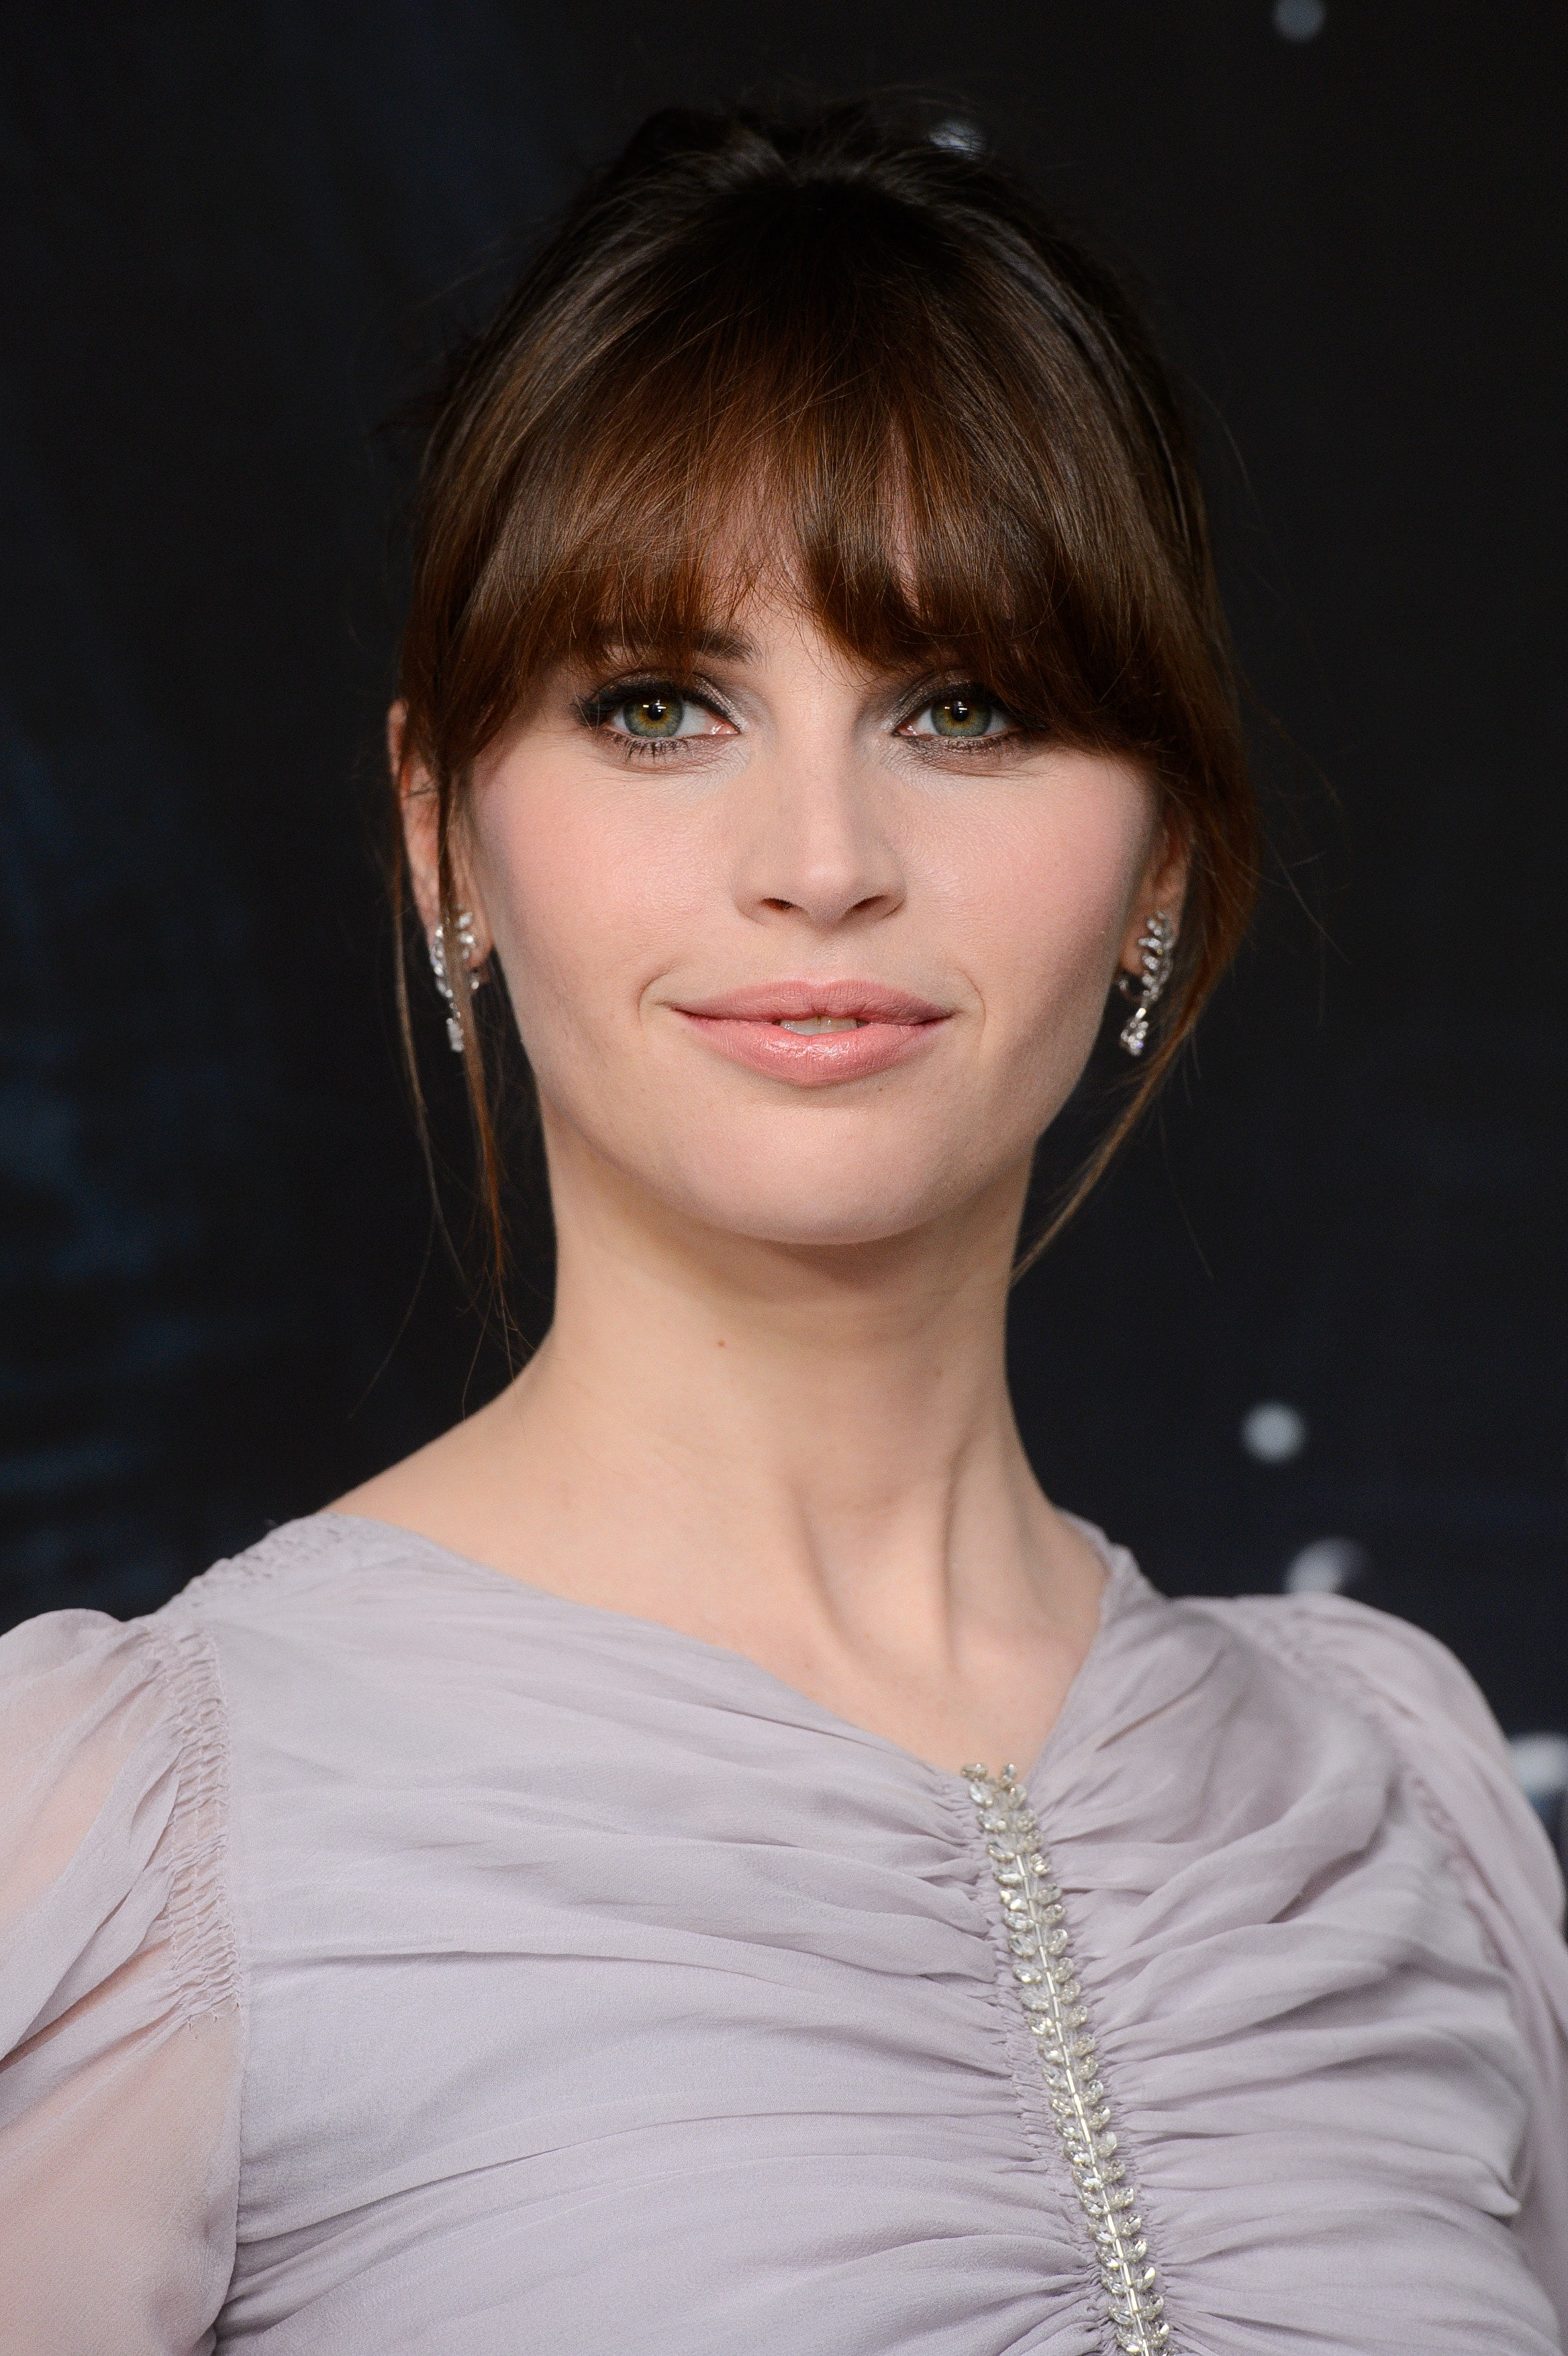 Red carpet hairstyles: All Things Hair - IMAGE - Felicity Jones Rogue One A Star Wars Story